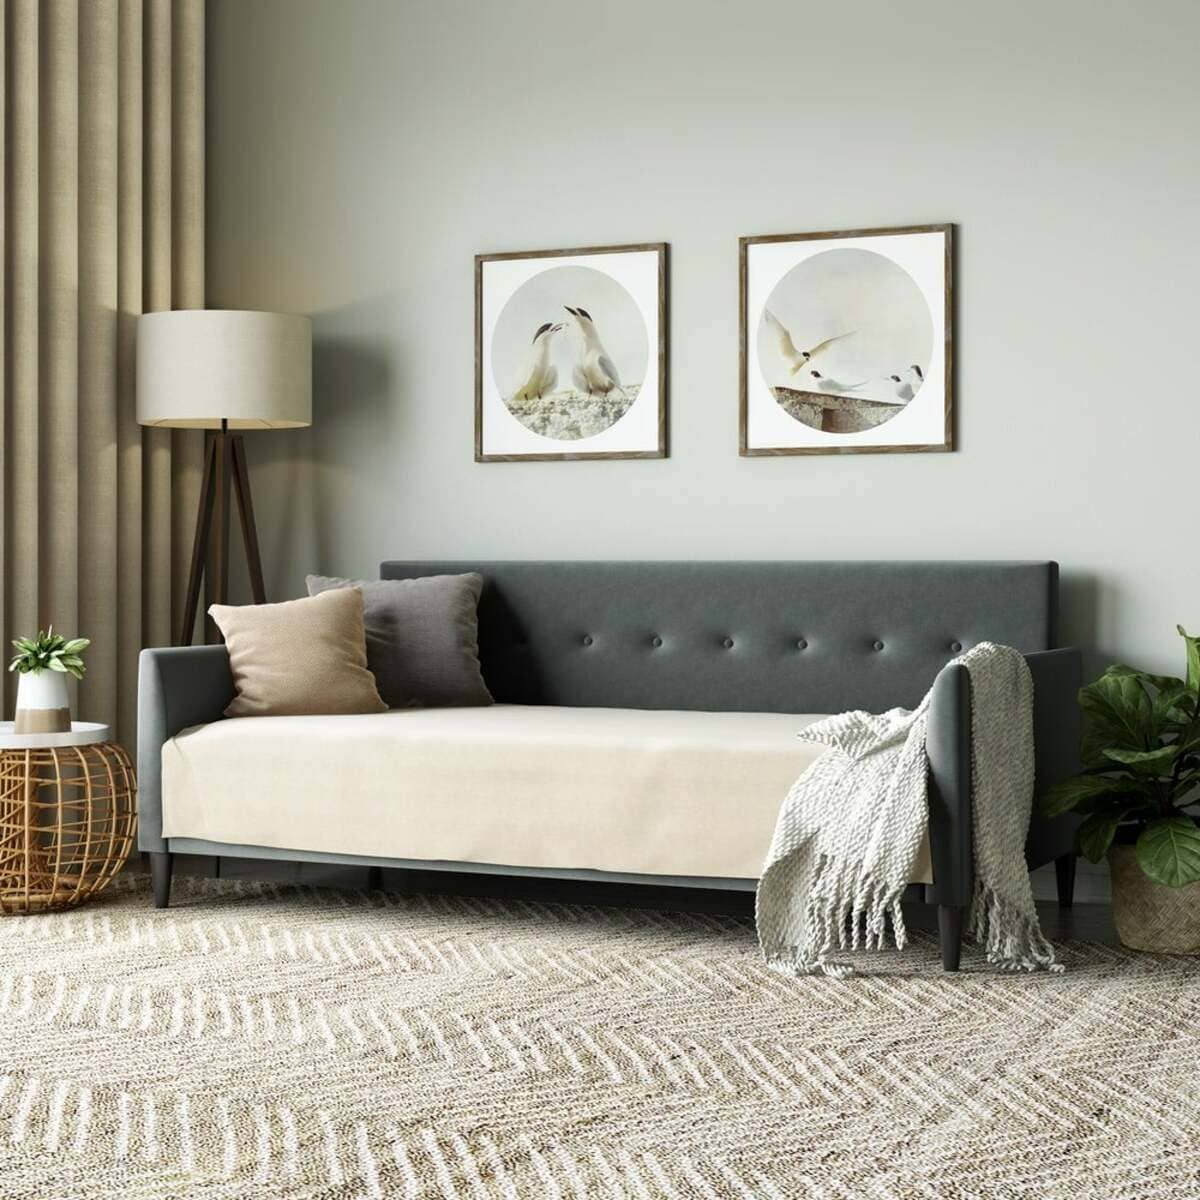 daybed 12 - 20 delightful daybeds that easily convert into comfortable beds